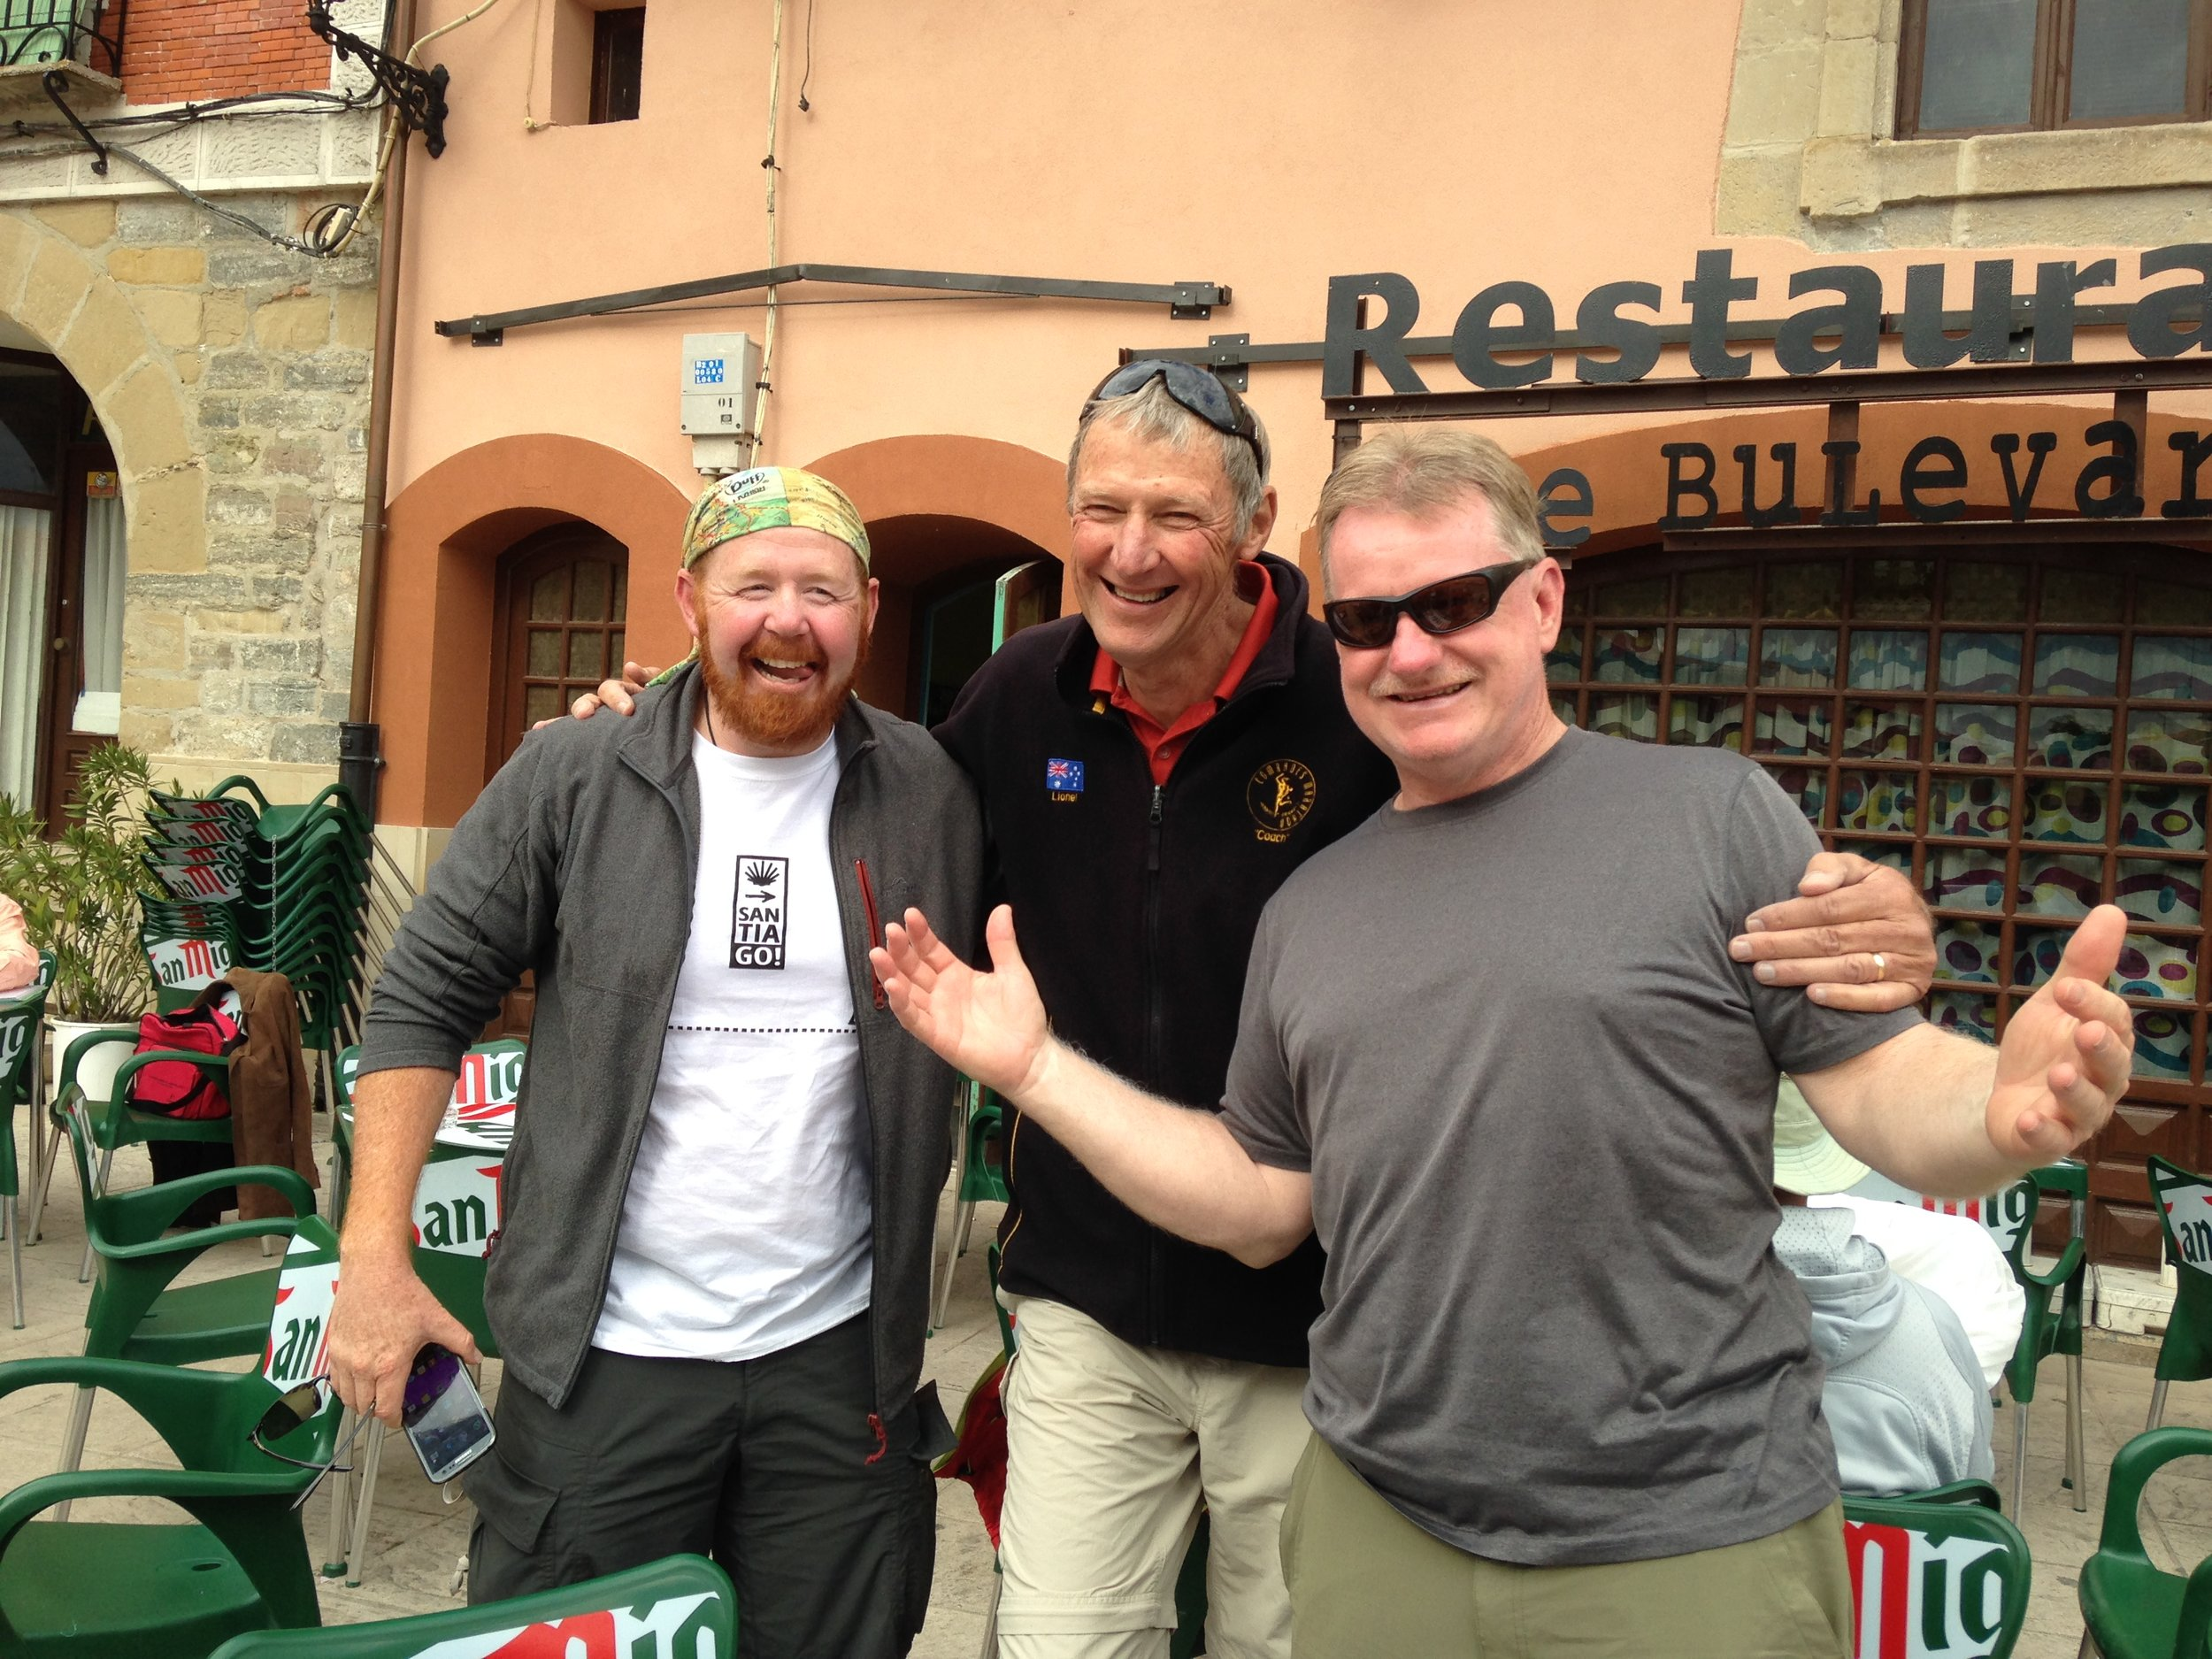 image 12, Rob, Lionel, and Pat.JPG